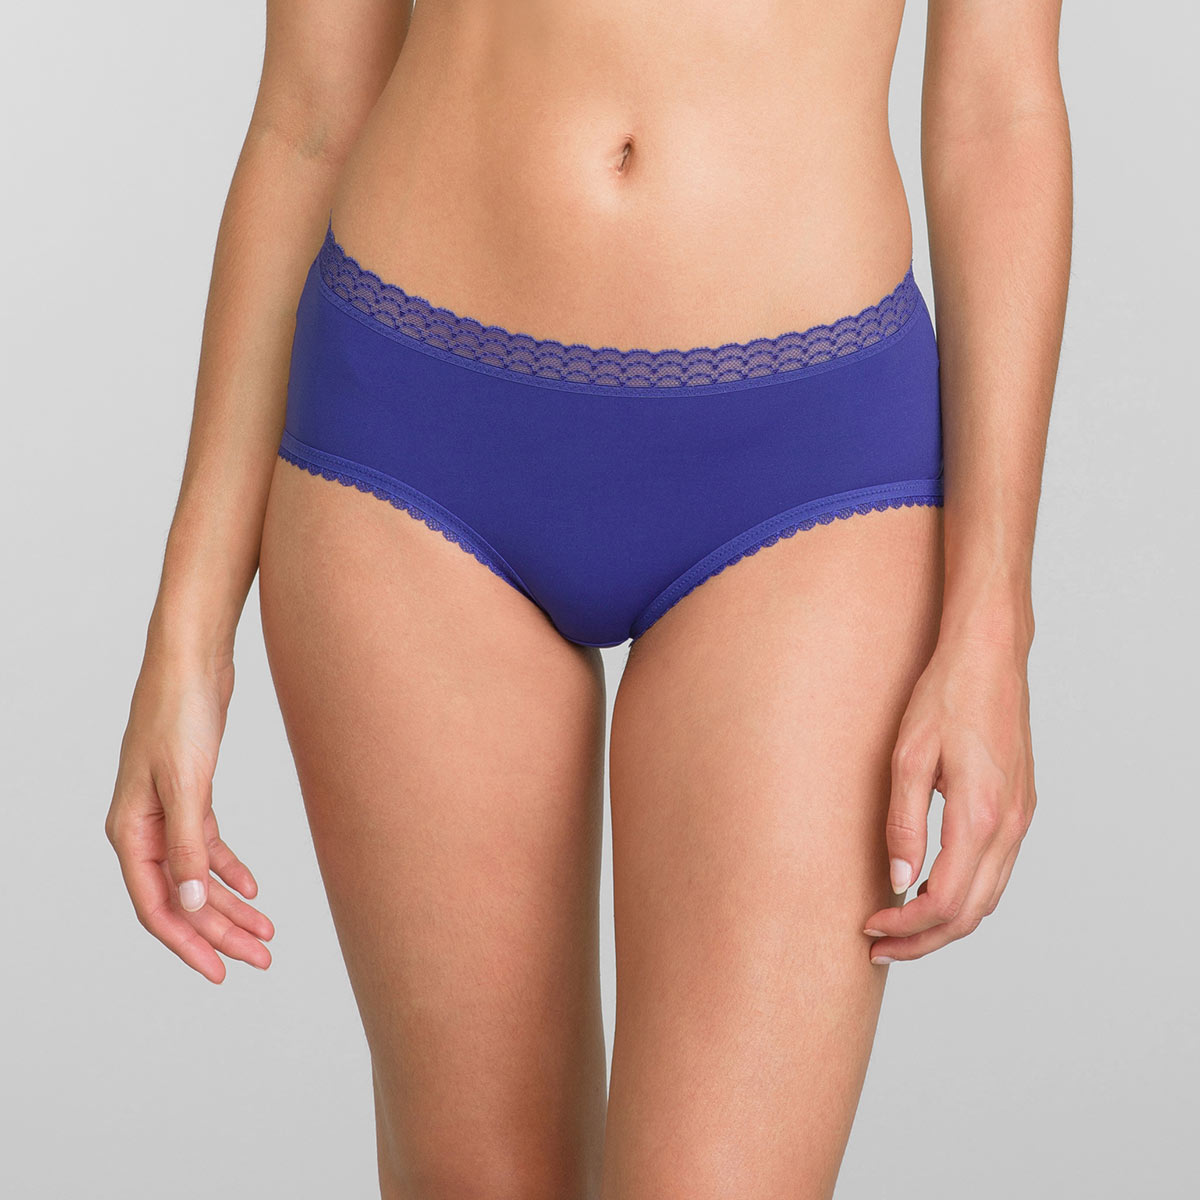 Midi Knickers in Sami Blue Invisible Elegance, , PLAYTEX